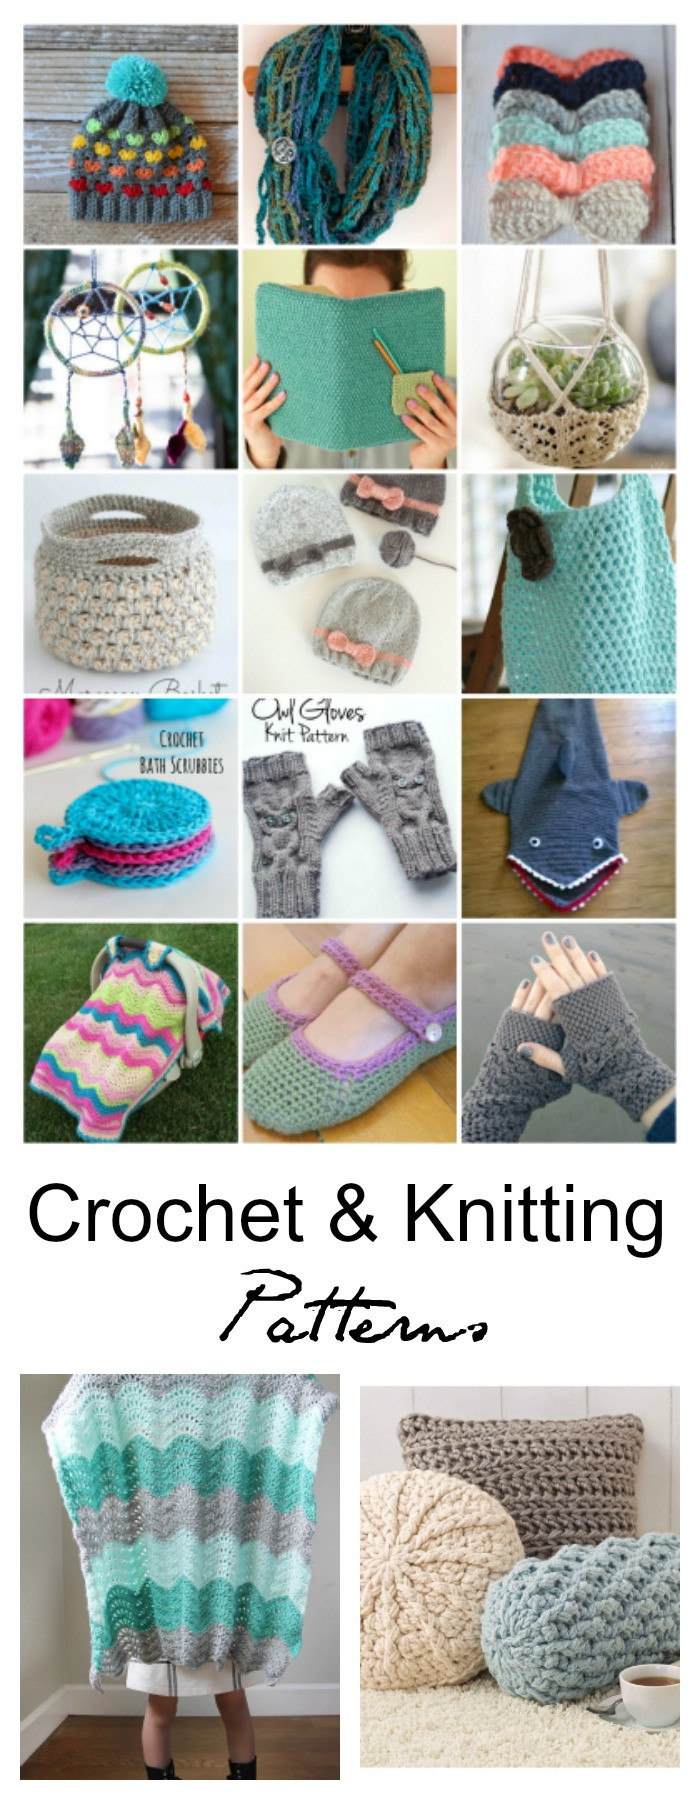 Elegant Free Crochet and Knitting Patterns the Idea Room Knitting and Crochet Patterns Of Adorable 46 Ideas Knitting and Crochet Patterns